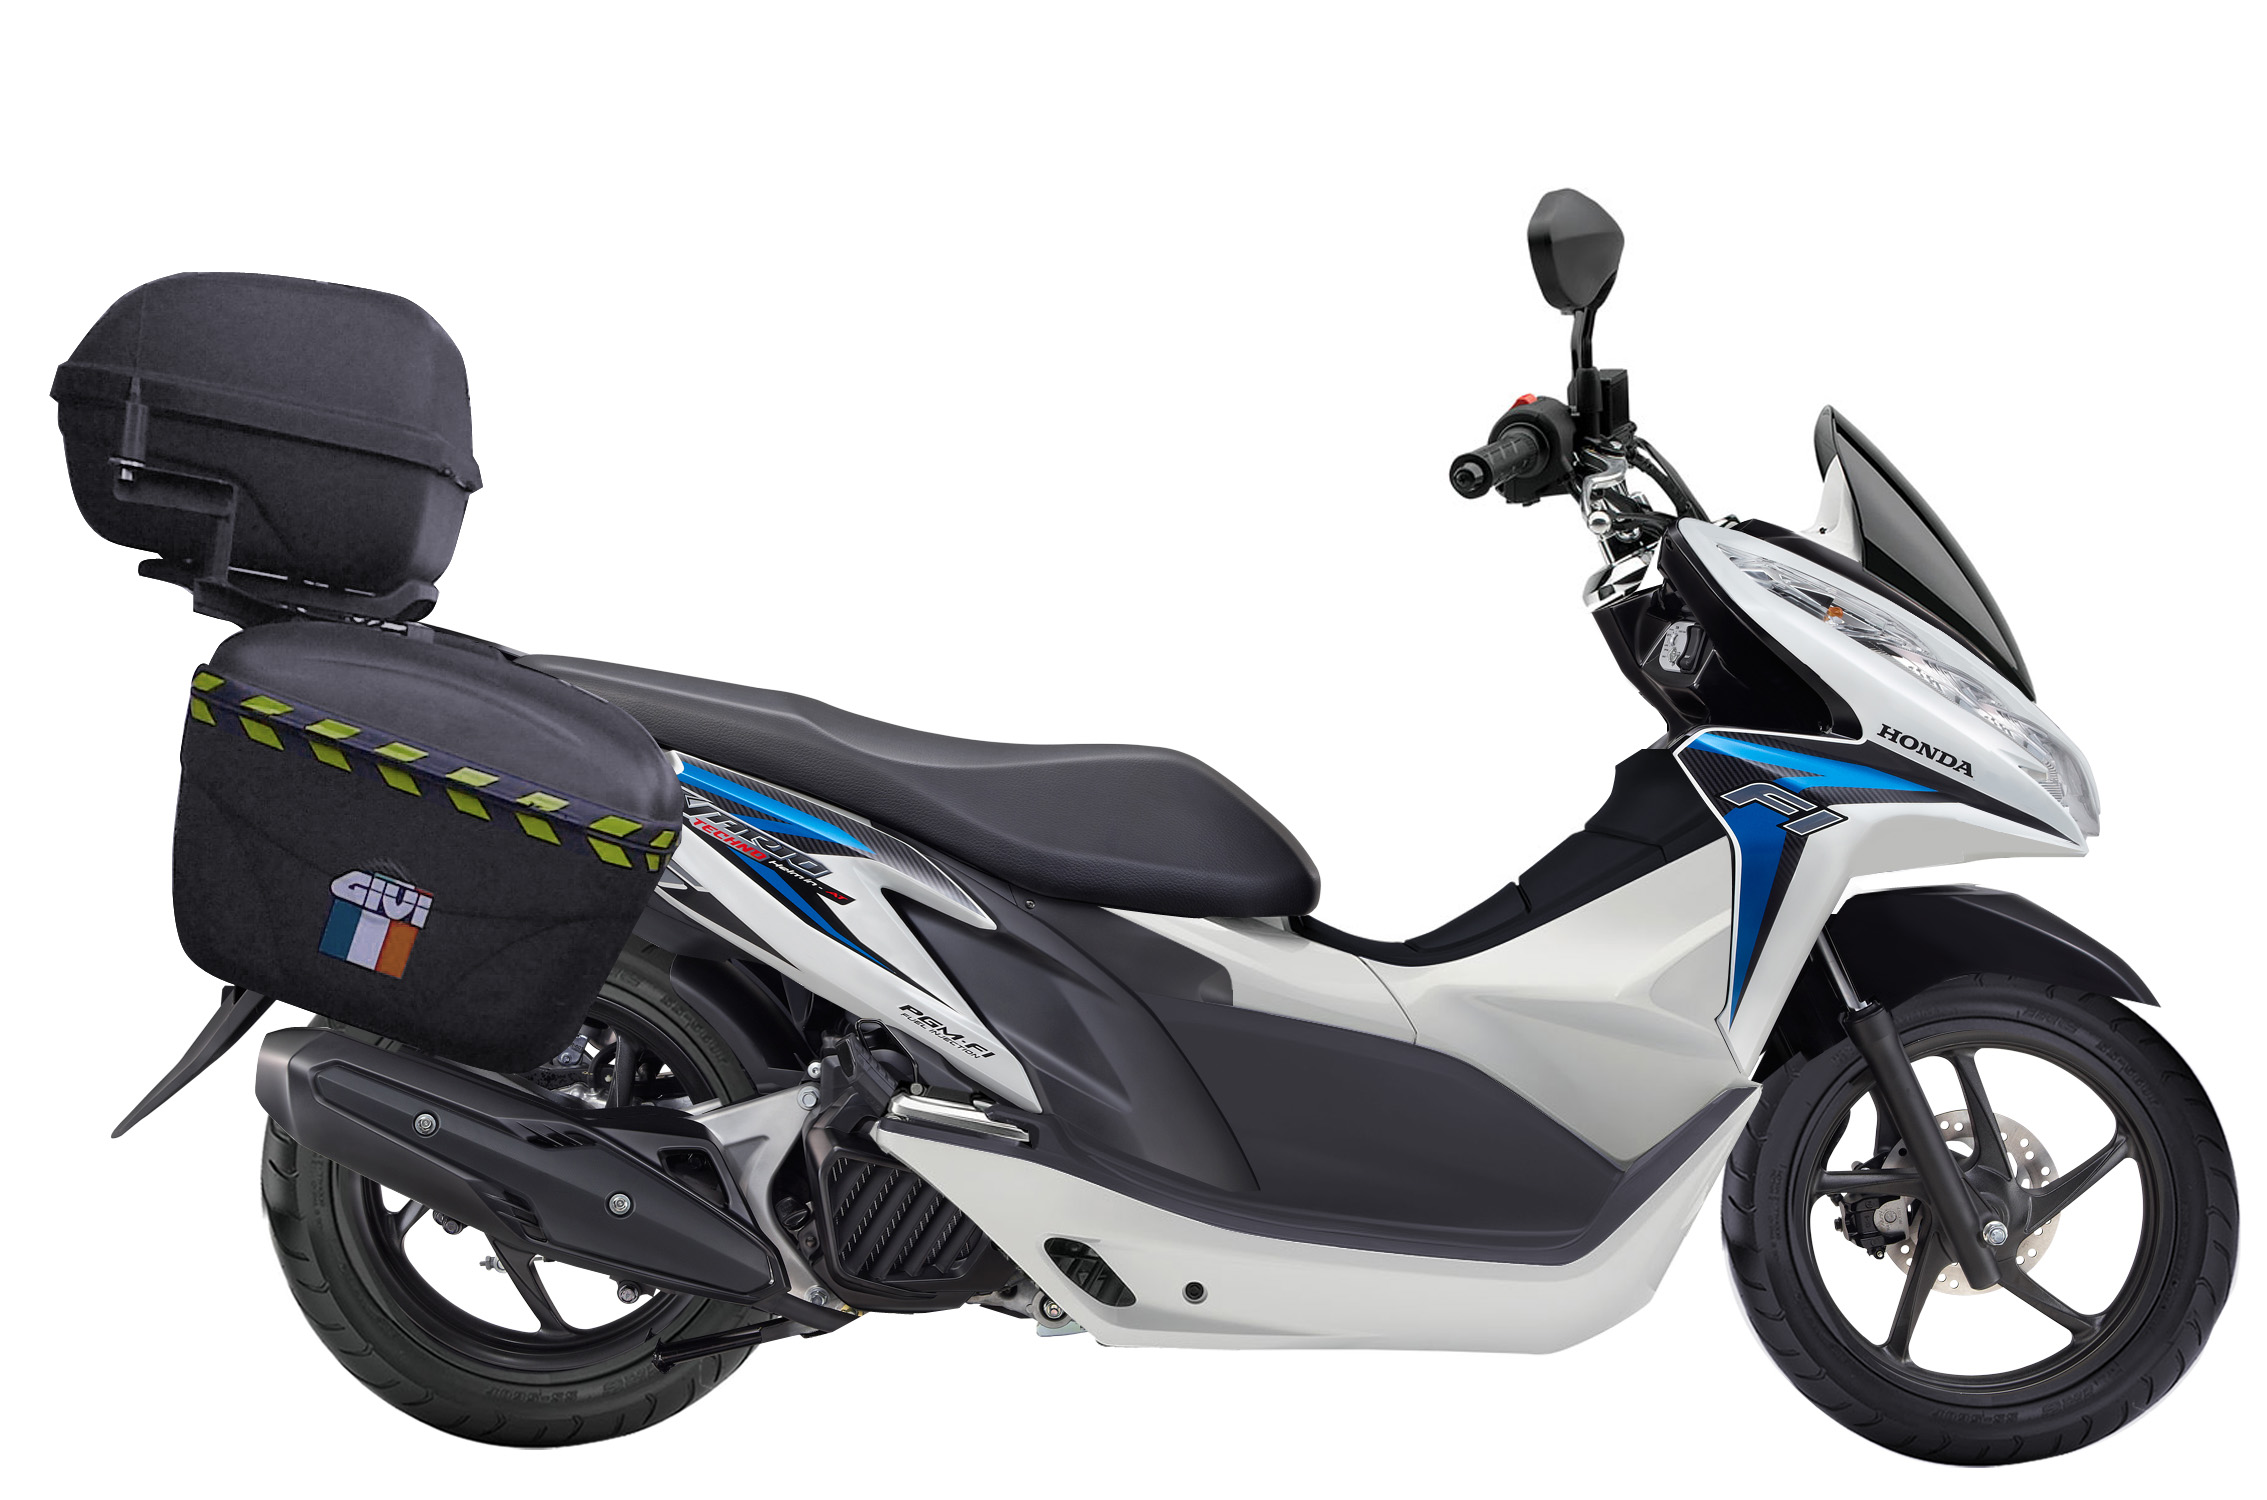 honda pcx modifikasi thailand with Modif Vario Pcx 125 Fi 2013 Bali 4 on Honda Pcx Hybrid 2018 further Harga Honda Pcx 2018 Putih 2 besides Honda Forza 125 City Gt further 2013 Honda Crf250l Dual Sport Officially Announced For Us as well Headl  Beat Street 2017 Putih.